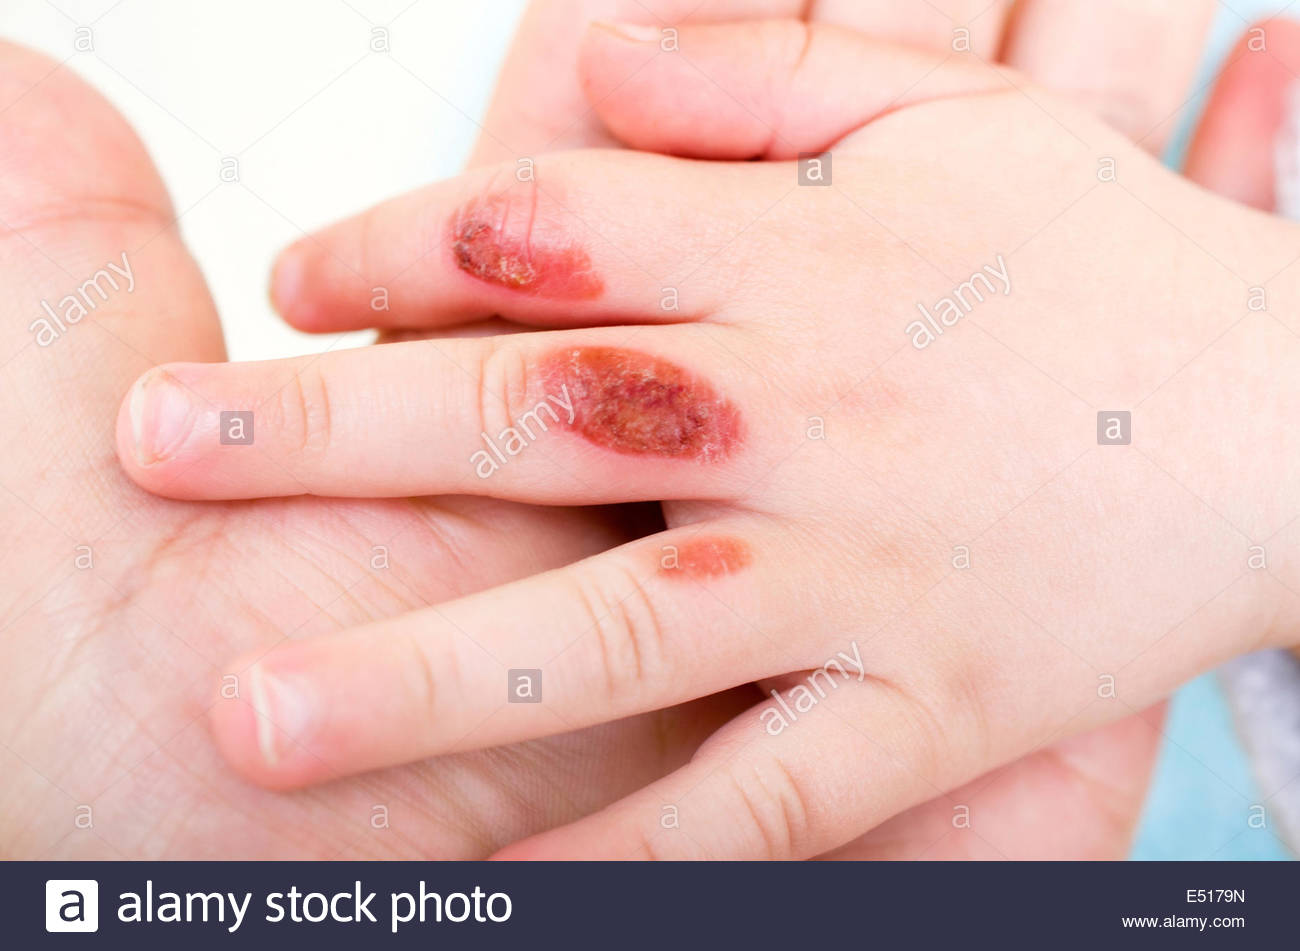 Burn Injuries Stock Photos Burn Injuries Stock Images Alamy